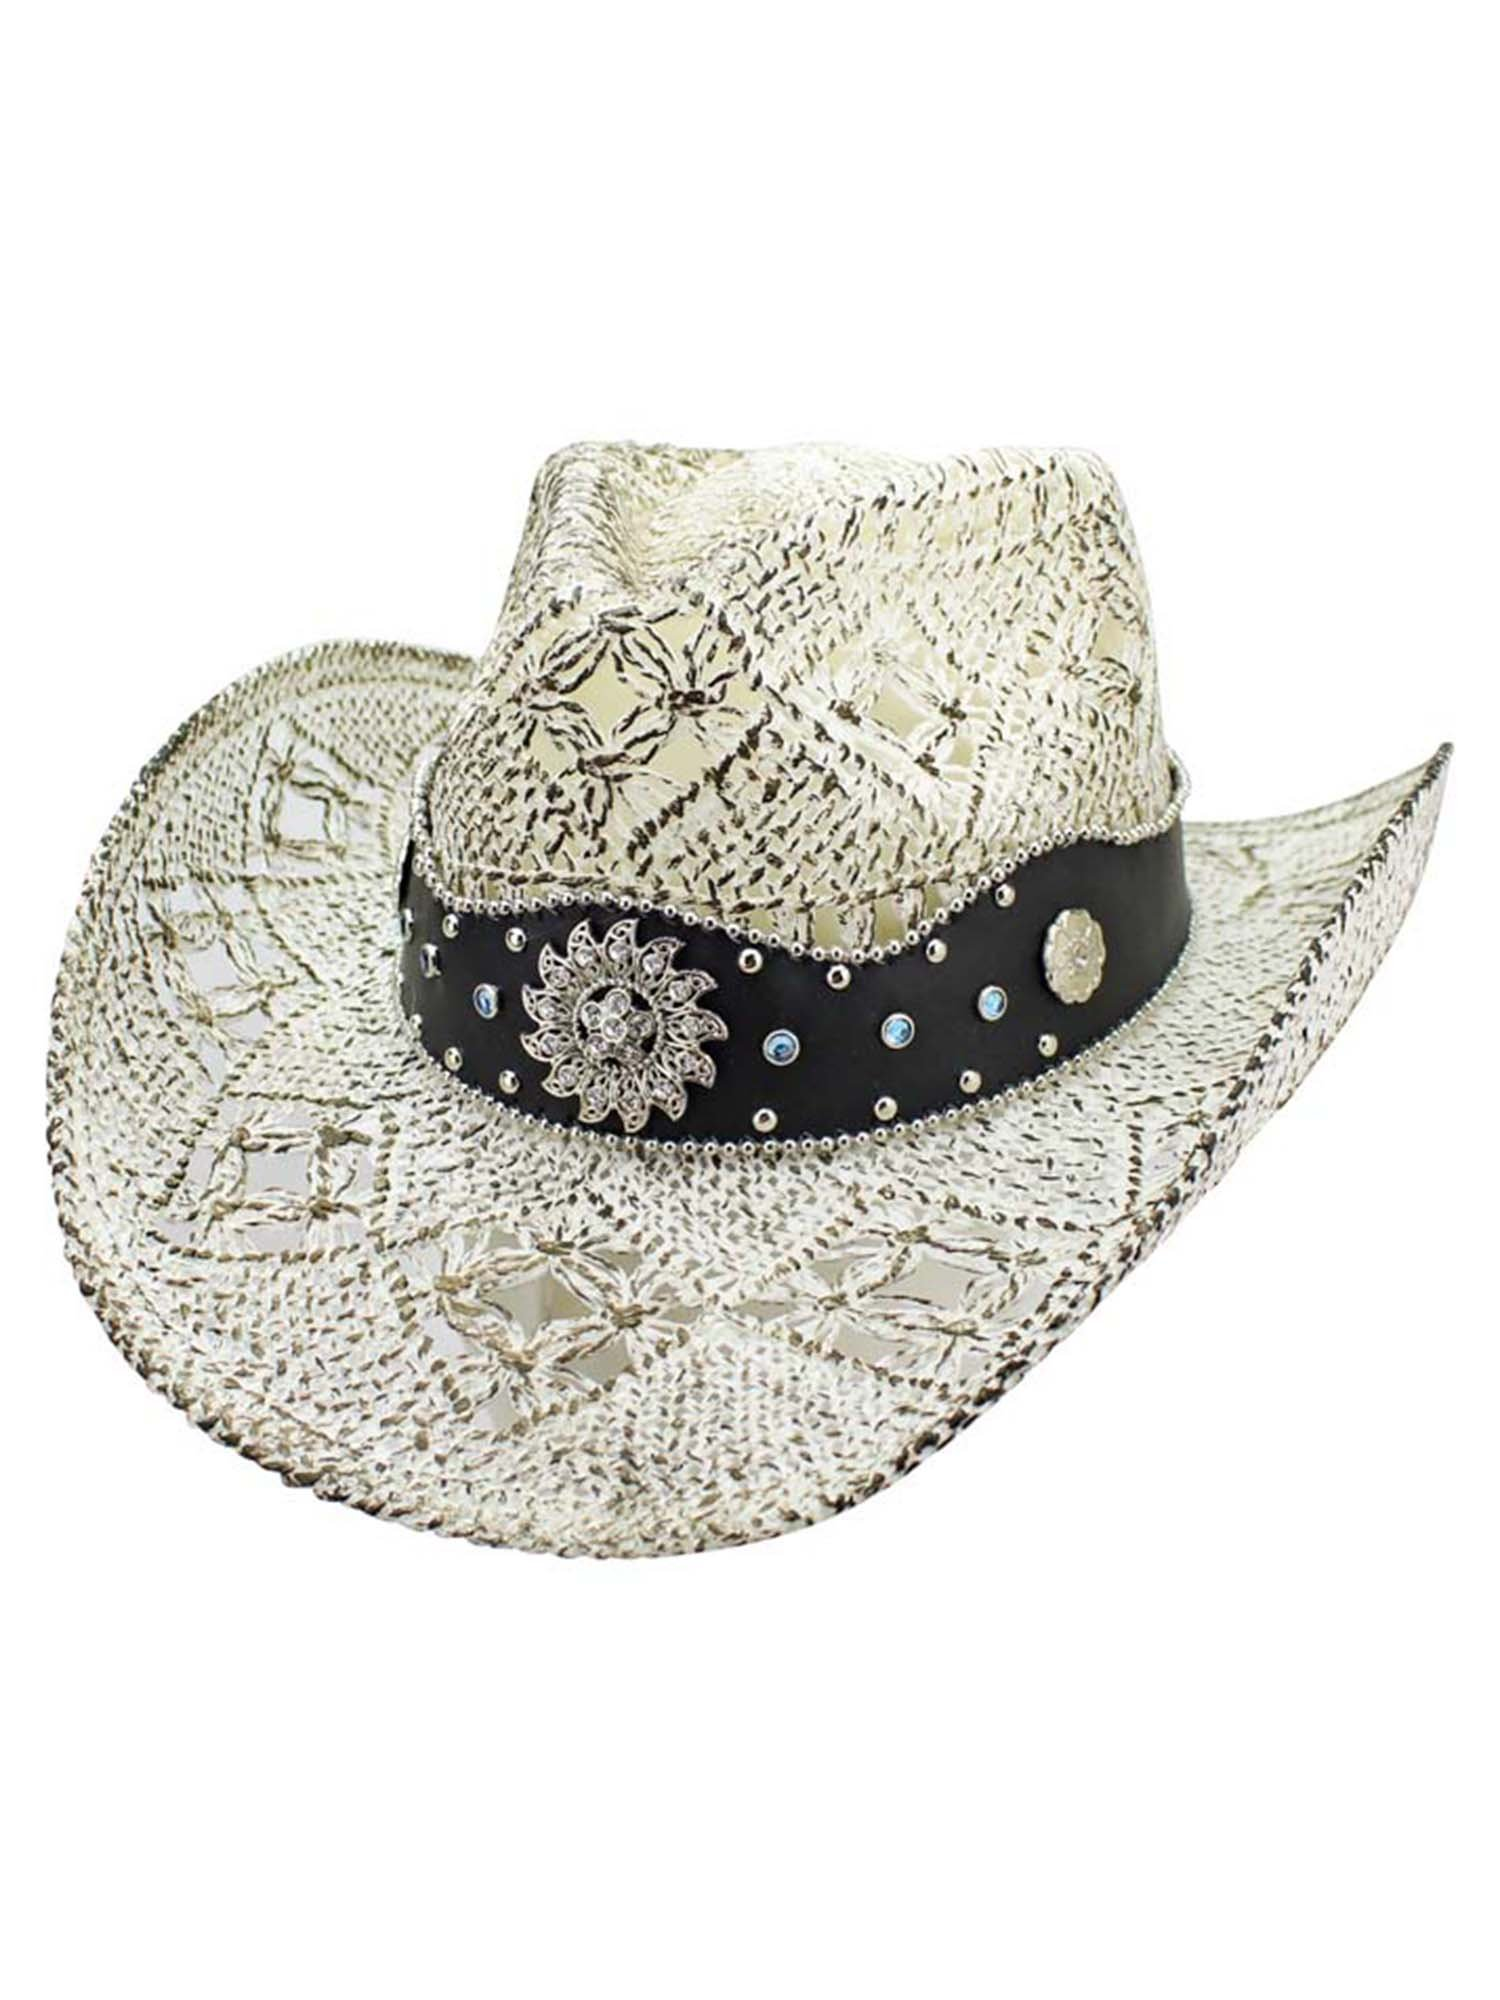 Luxury Divas White Antiqued Straw Cowboy Hat with Jeweled Band Size Small